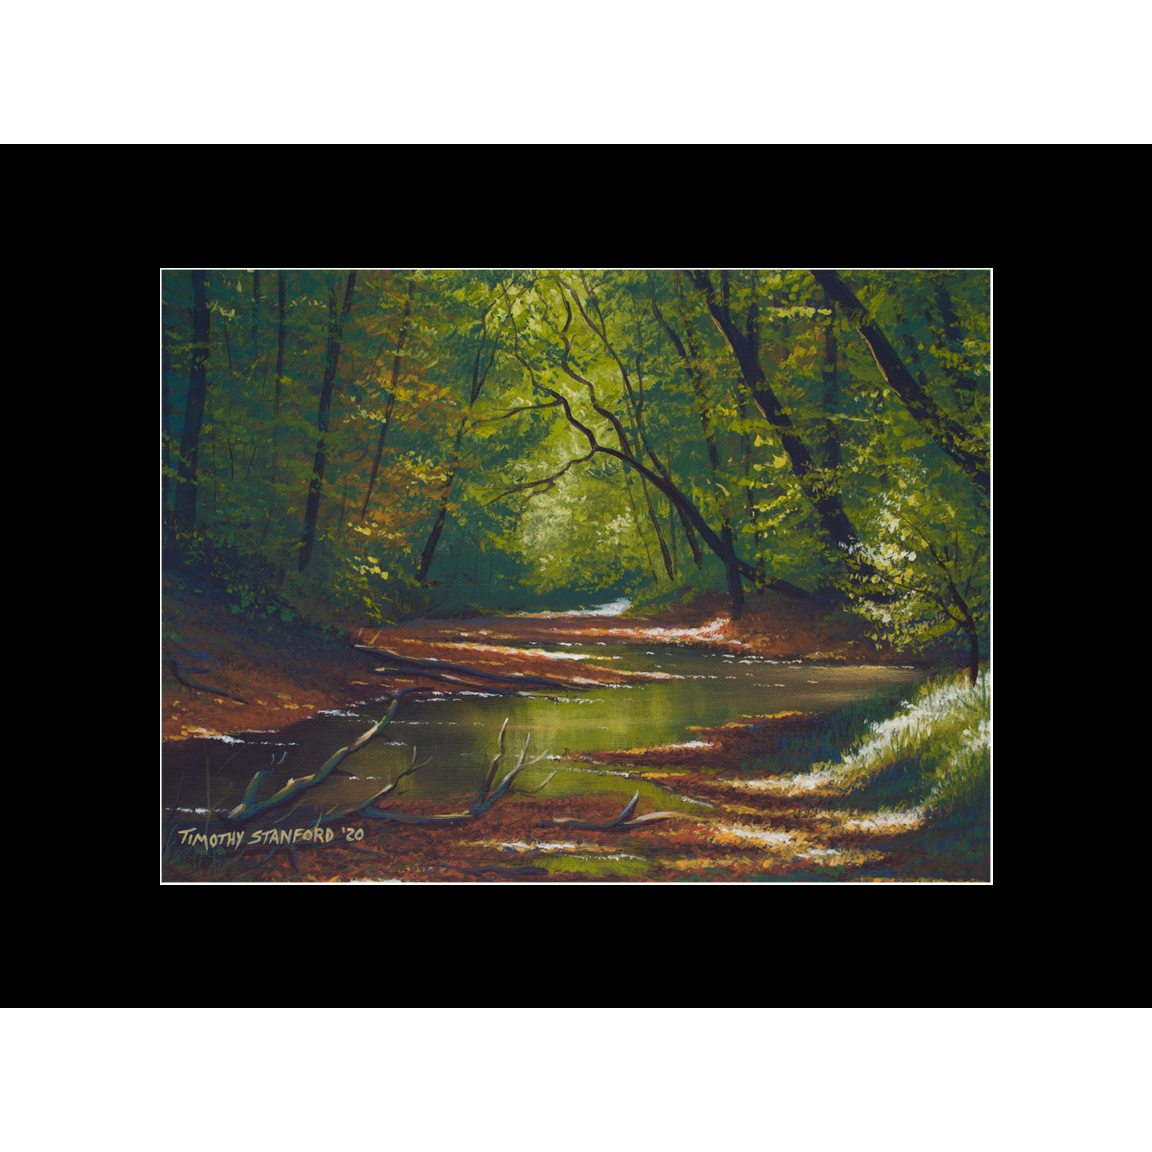 """Fine art matted print of Timothy Stanford's original acrylic painting """"Banks of Solace"""""""